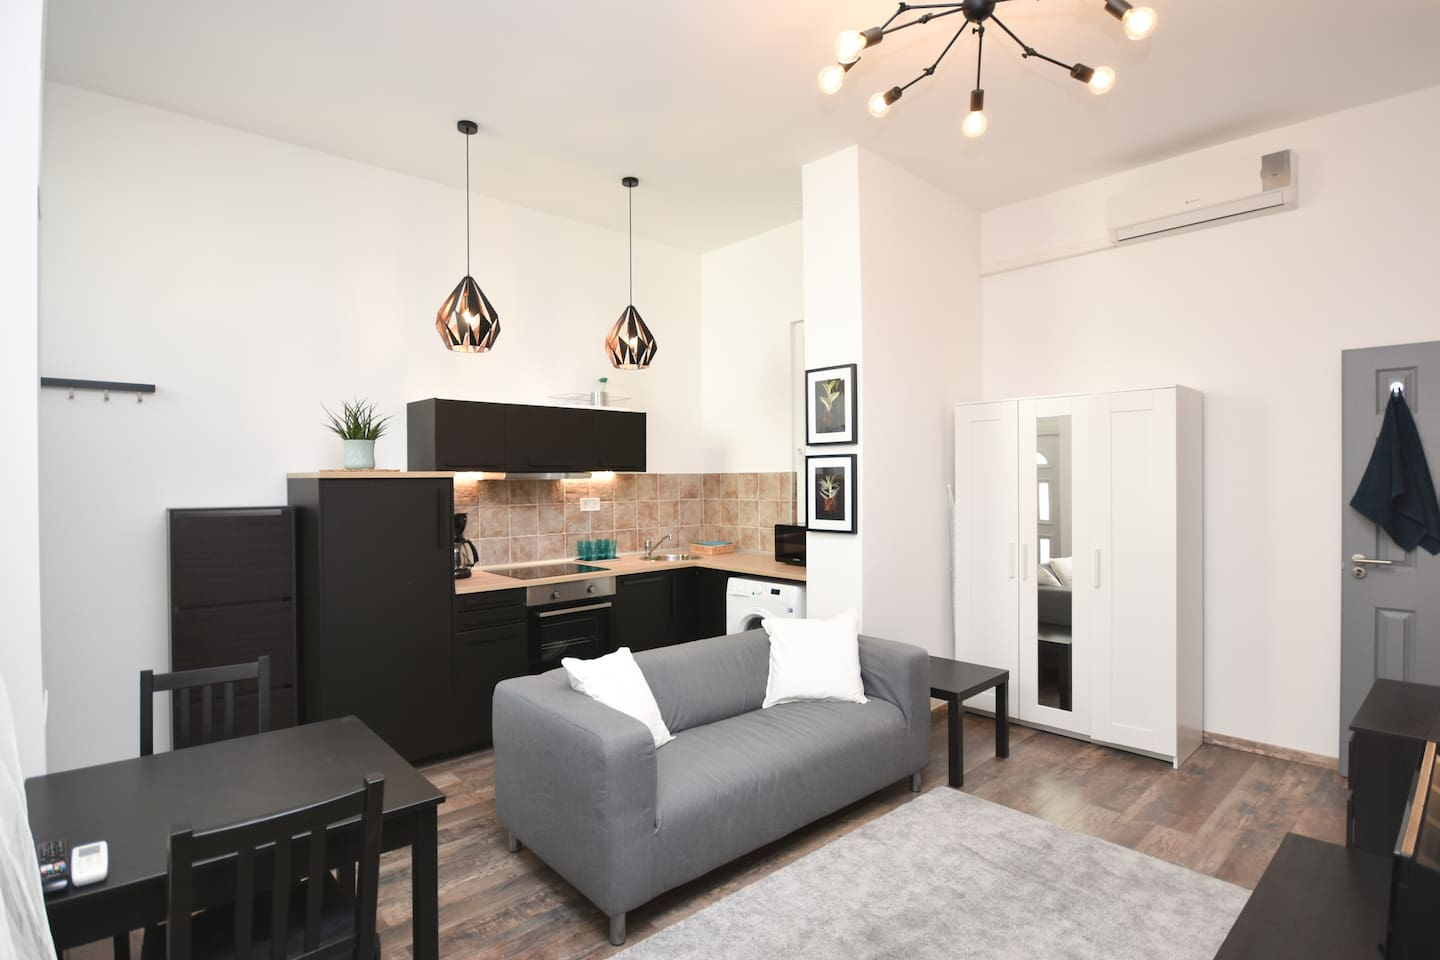 You can have a rest in this calm living room, after your long walks in the city of Budapest